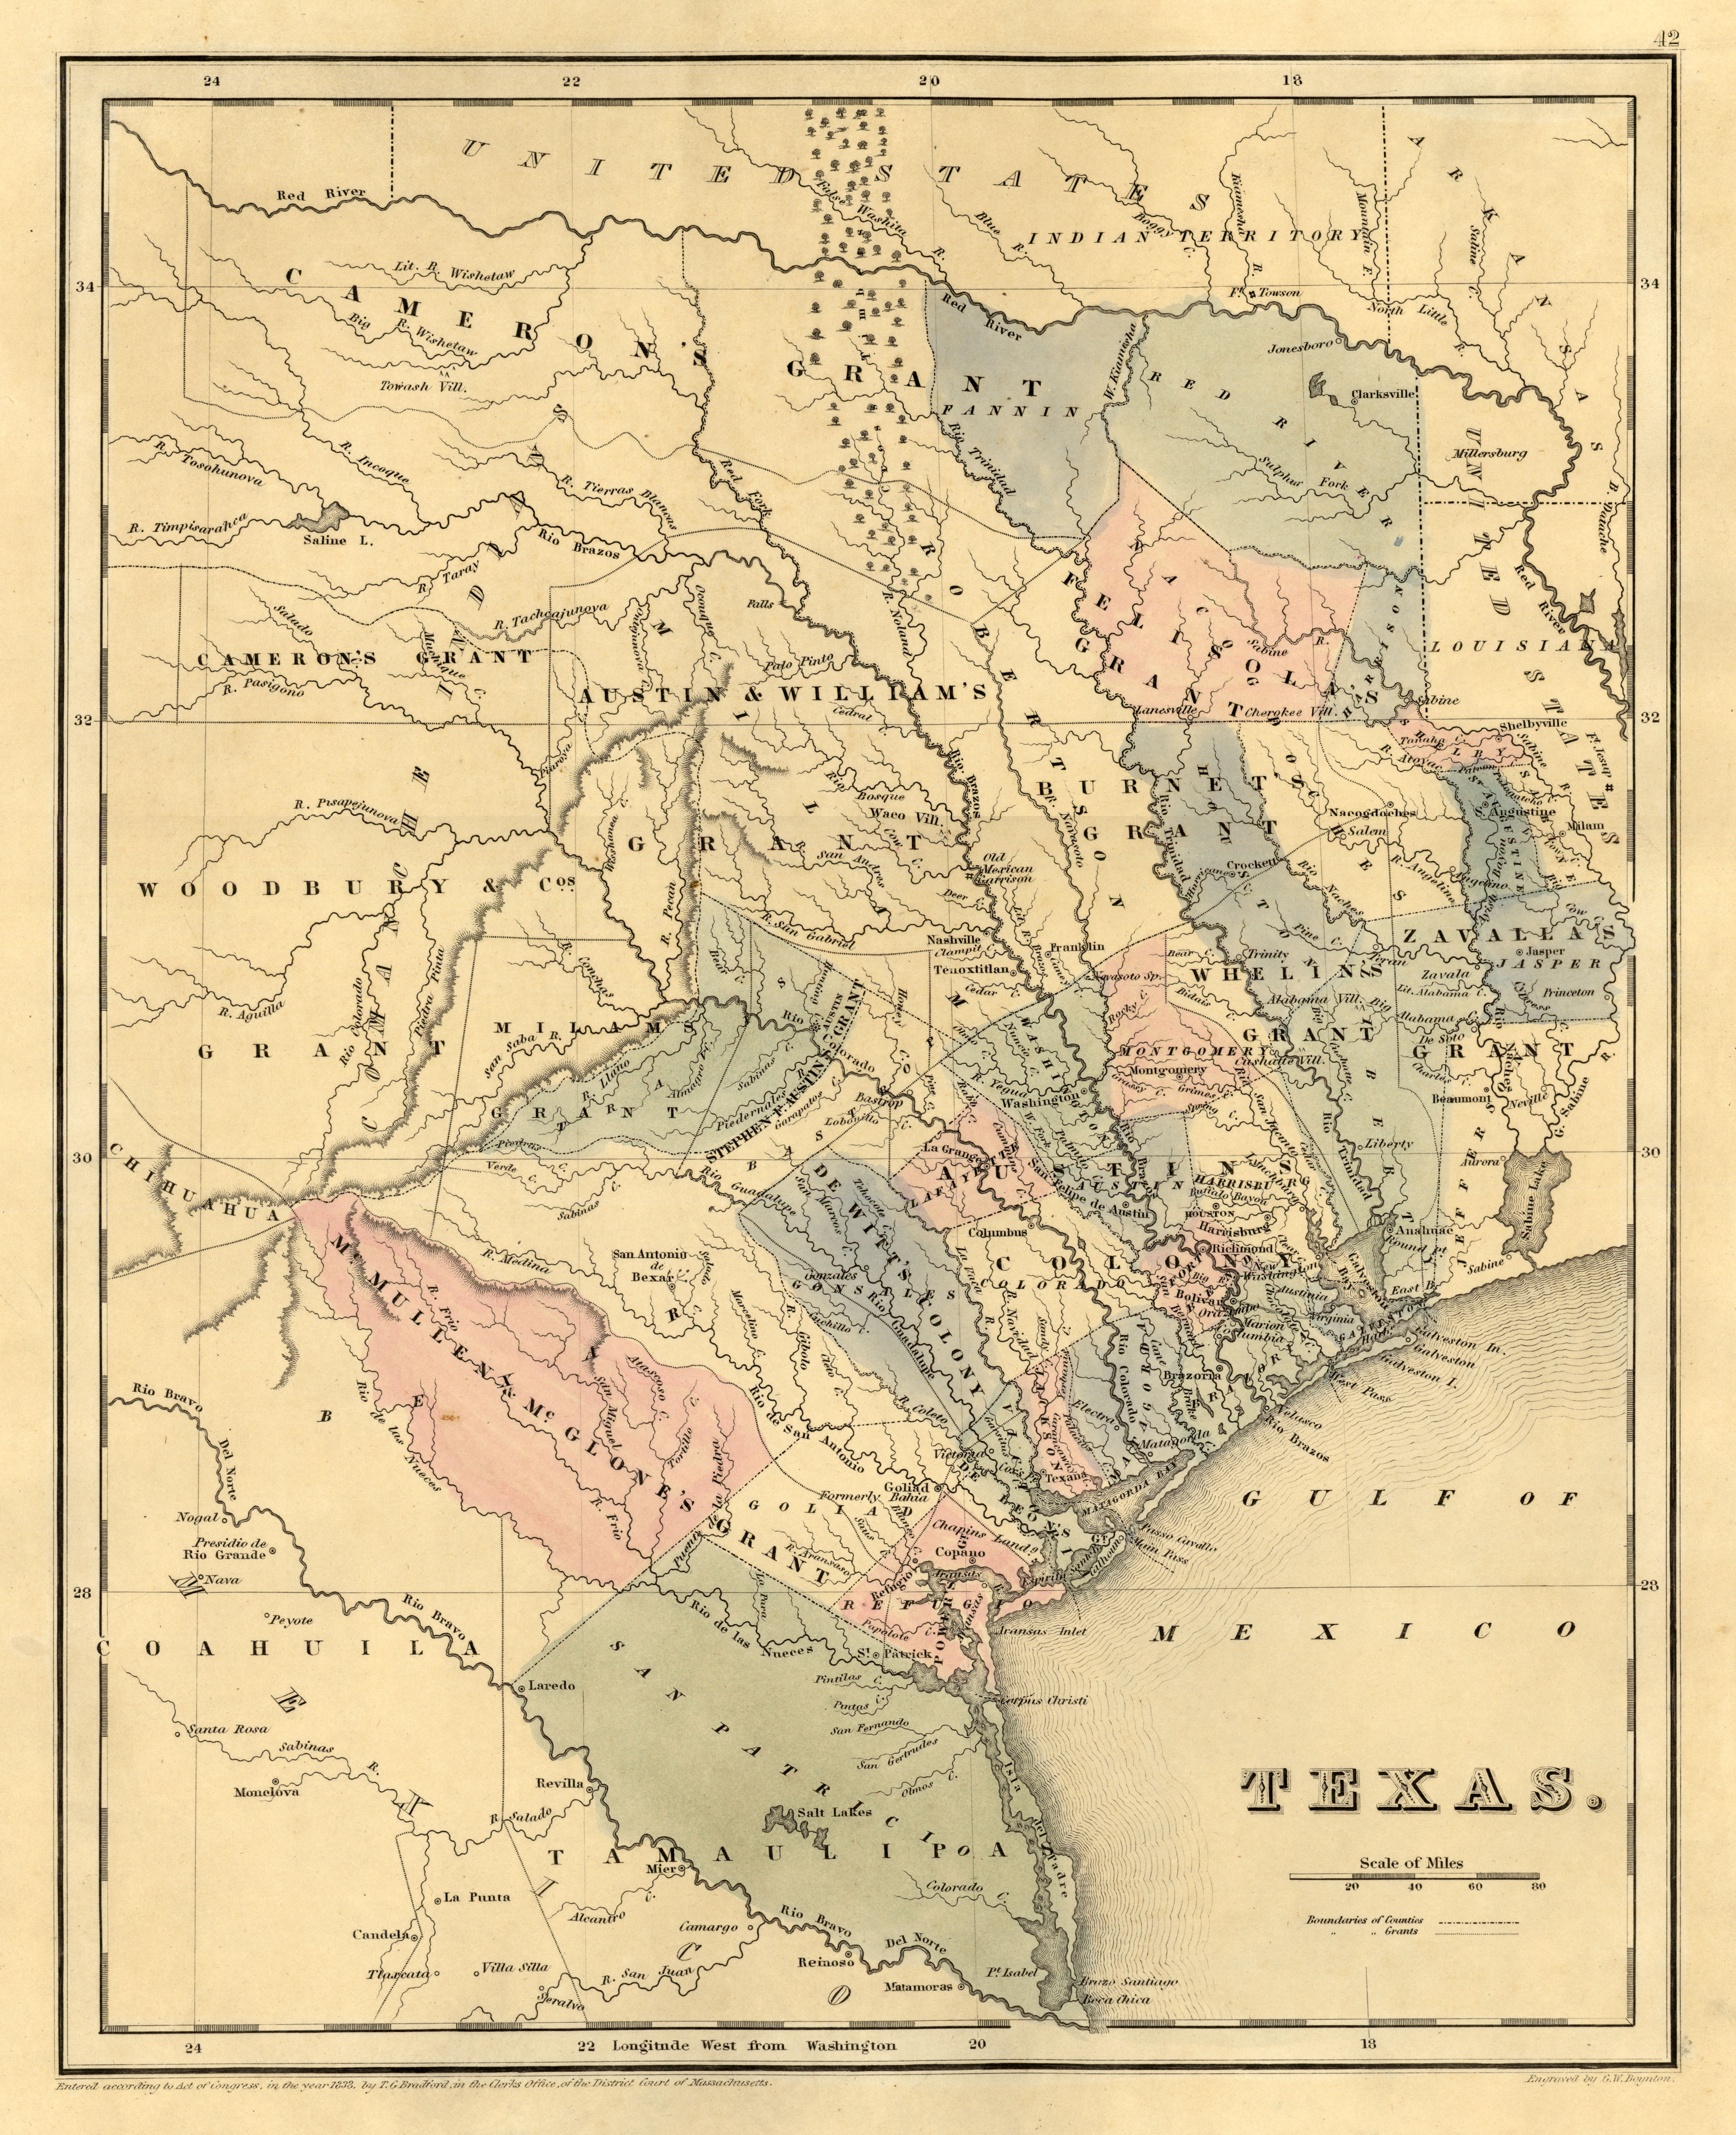 Texas Historical Maps PerryCastañeda Map Collection UT - Map of us railroads in 1850